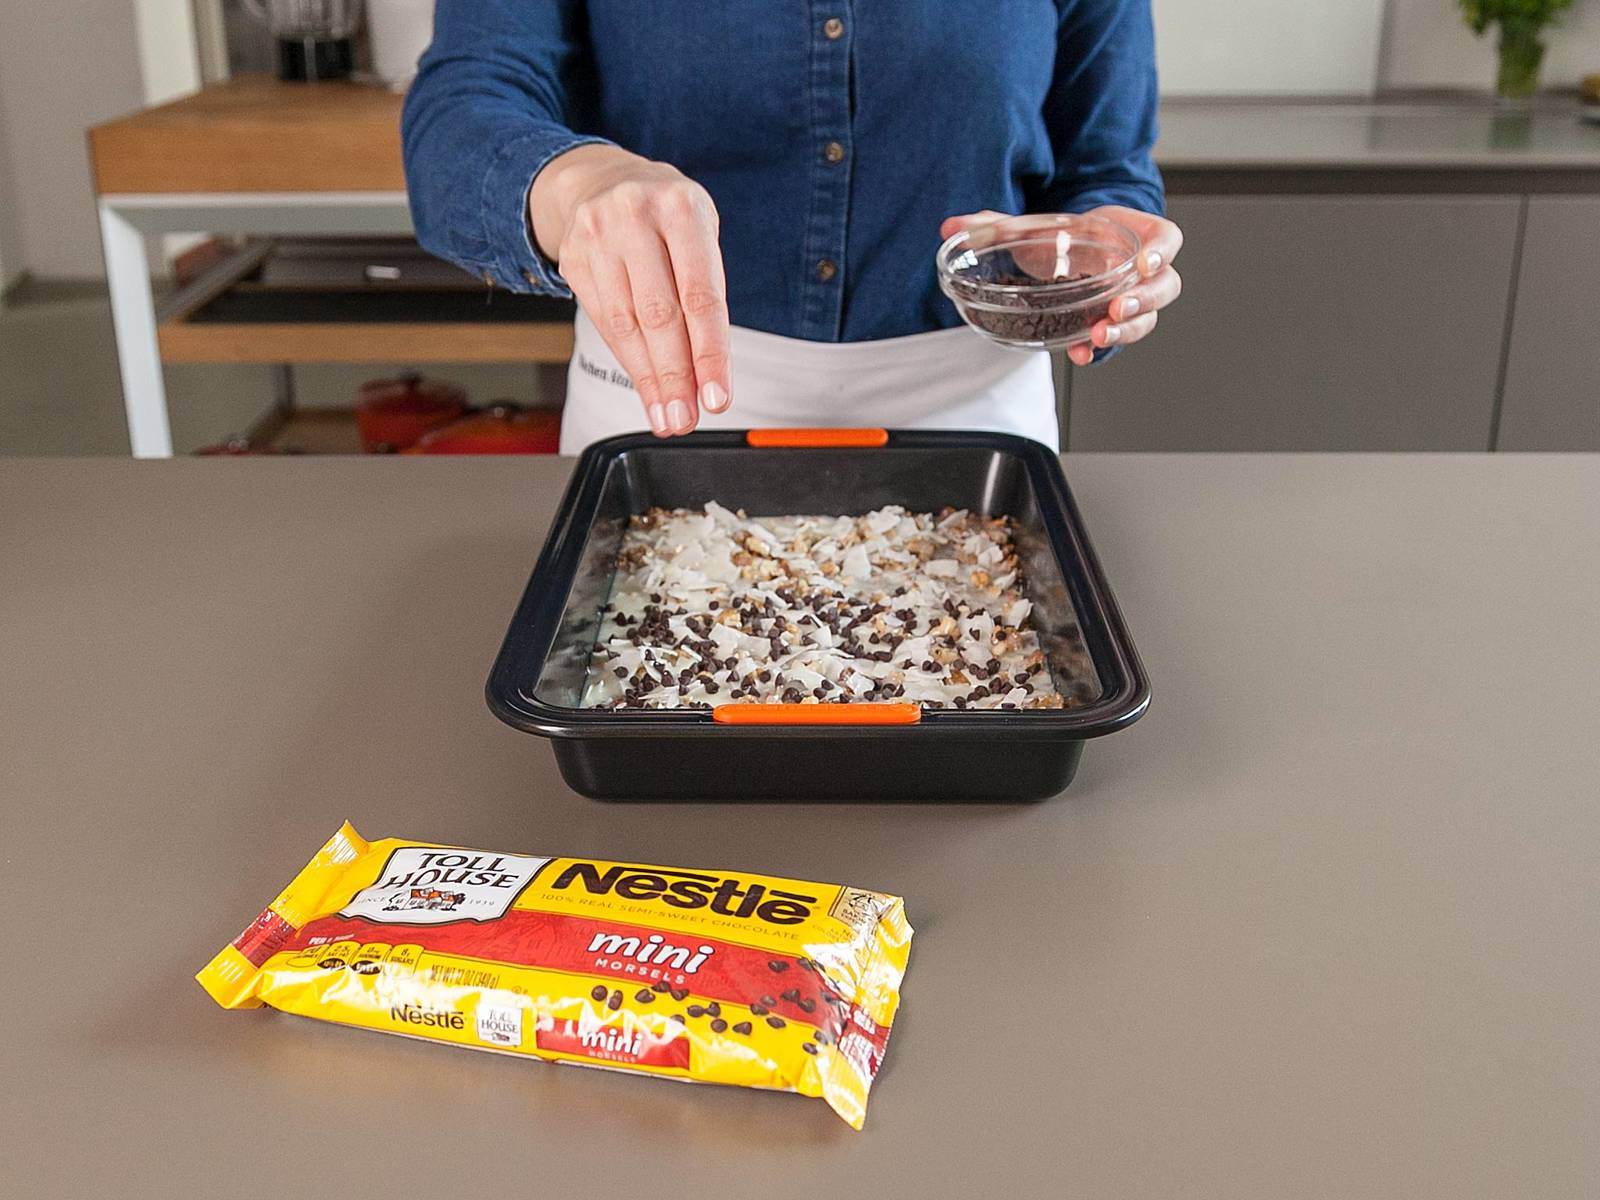 Sprinkle with morsels and remaining crushed pretzels; press down lightly.